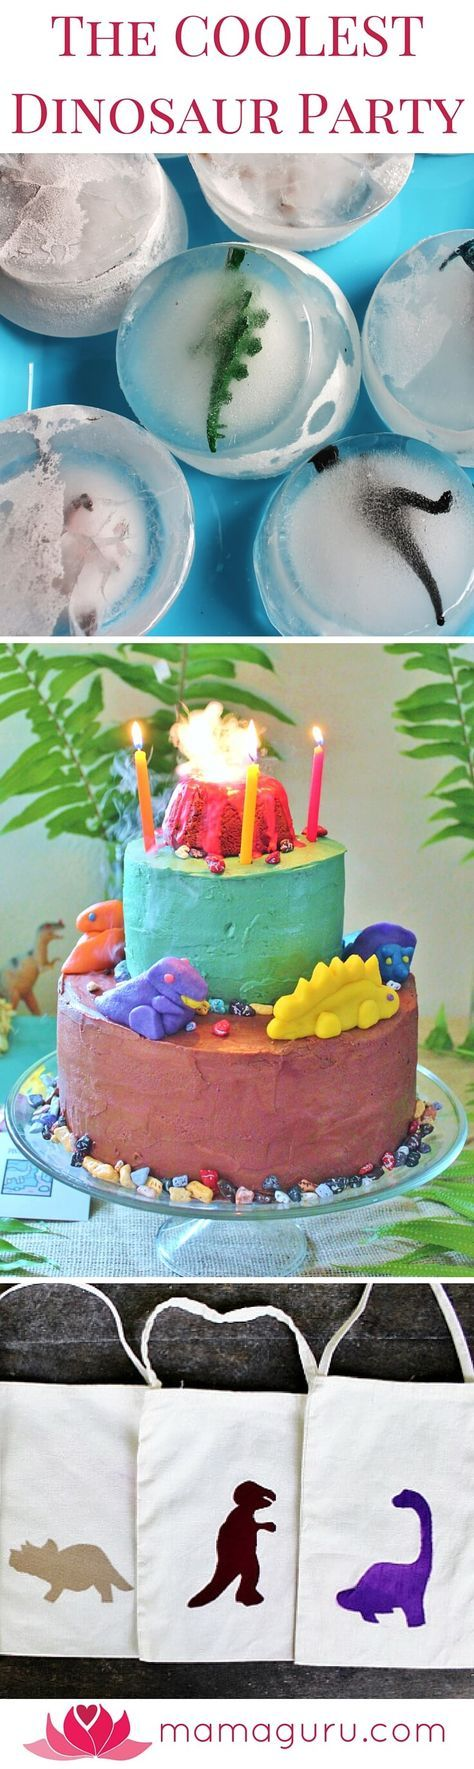 This is a complete guide to hosting the coolest dinosaur birthday party ever! You can throw the best party on the block without racking your brain or blowing your budget. It includes: 9 unique dinosaur party activities, DIY invitations, a dinosaur-themed party menu, dino goody bags, party favors, dramatic DIY decorations, and an awesome dinosaur cake with a steaming volcano on top! Best of all, it's inexpensive to host, but it's exciting and memorable for the kids. This party was designed…